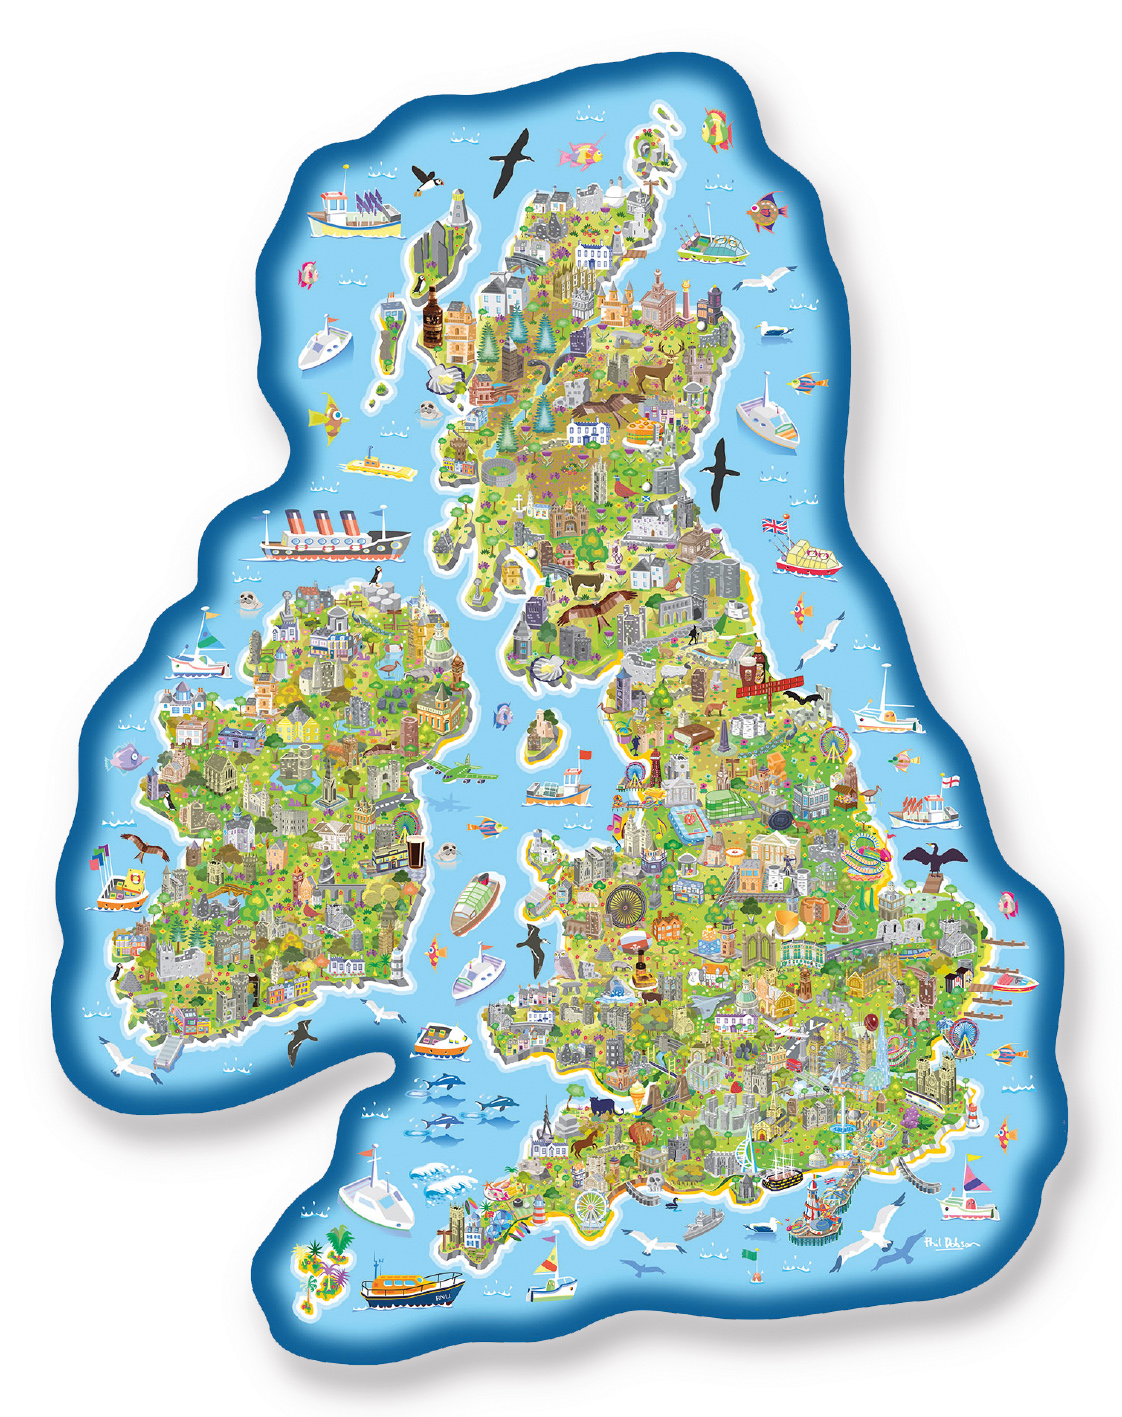 Jigmap Great Britain & Ireland Jigsaw